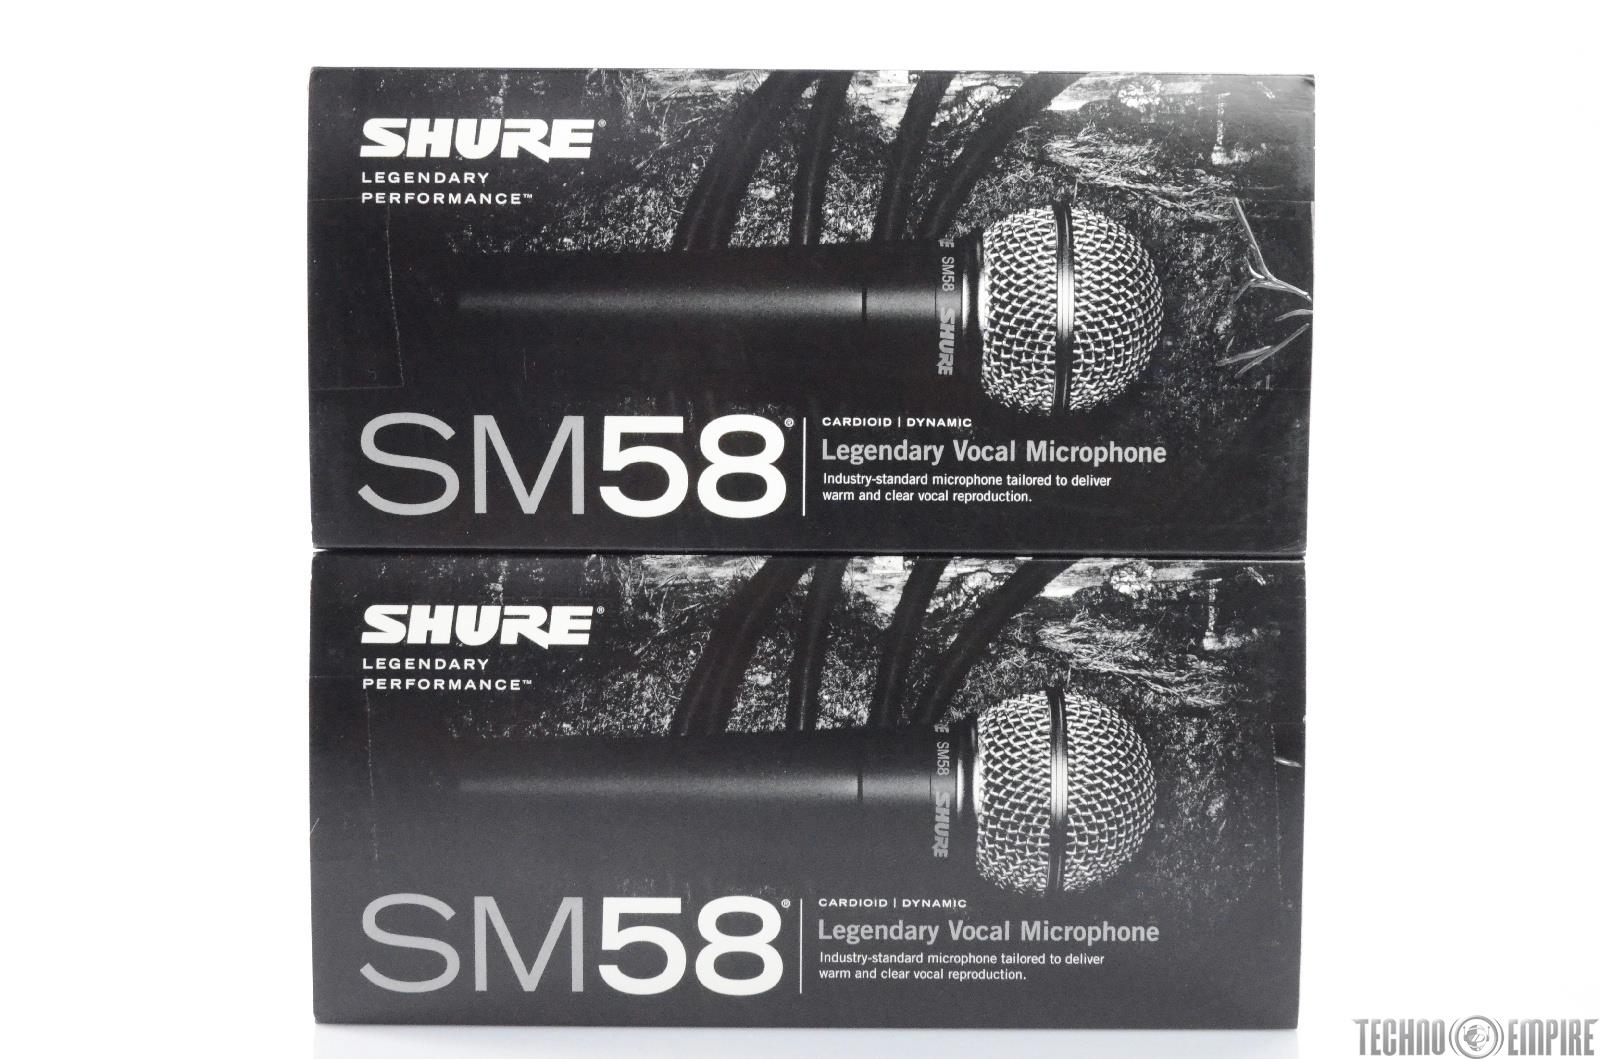 2 SHURE SM58 Cardioid Dynamic Microphones Fairfax Recordings #27933